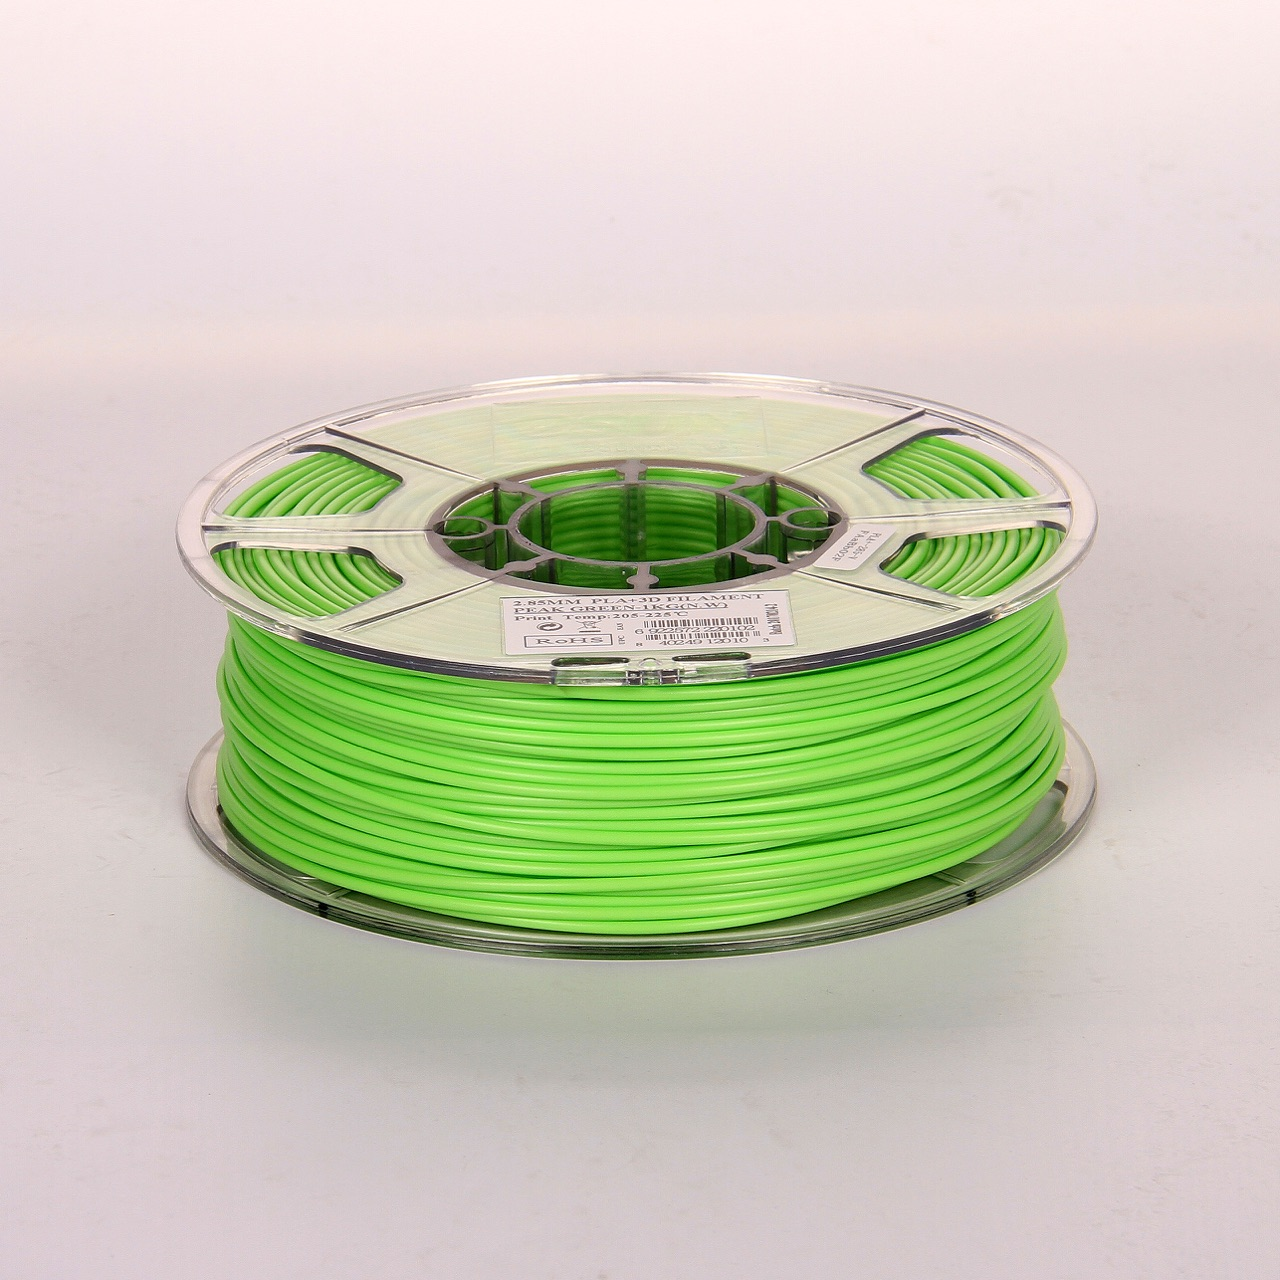 PLA filament, 3.0mm, Transparent Grass Green, 1kg/spool - MK-PLA300TGG